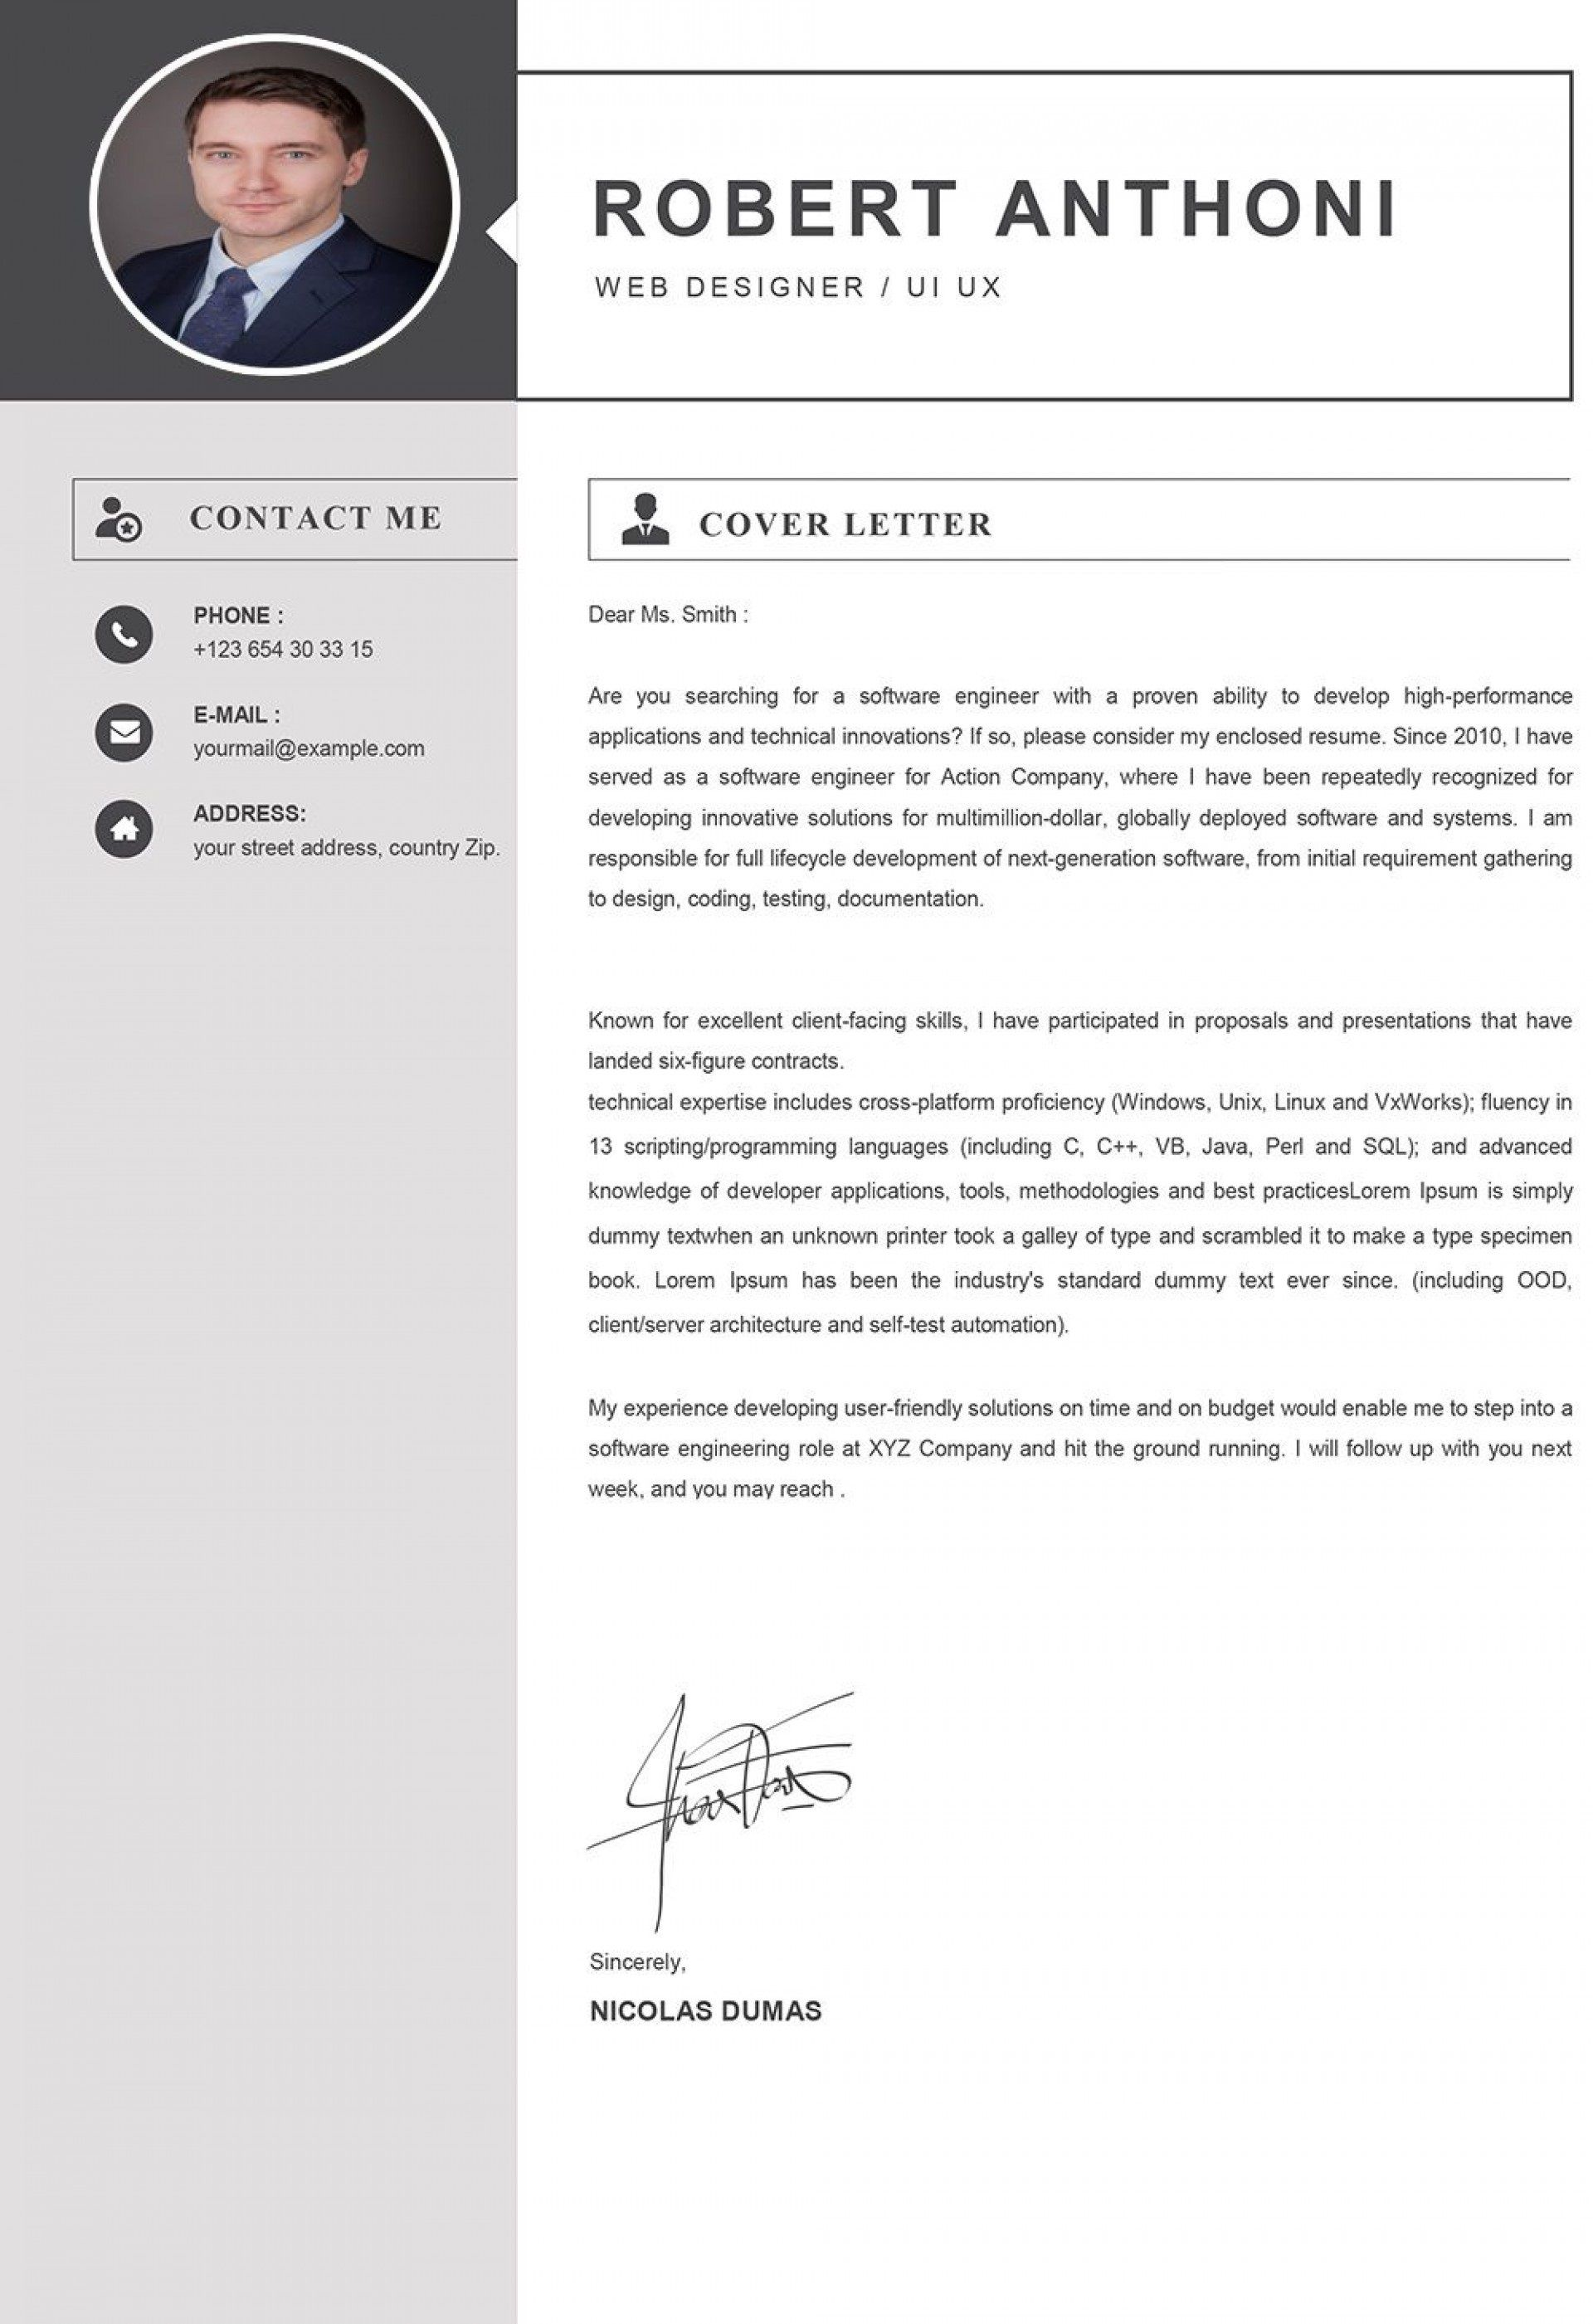 006 Archaicawful Cover Letter Template Download Mac Inspiration  FreeFull